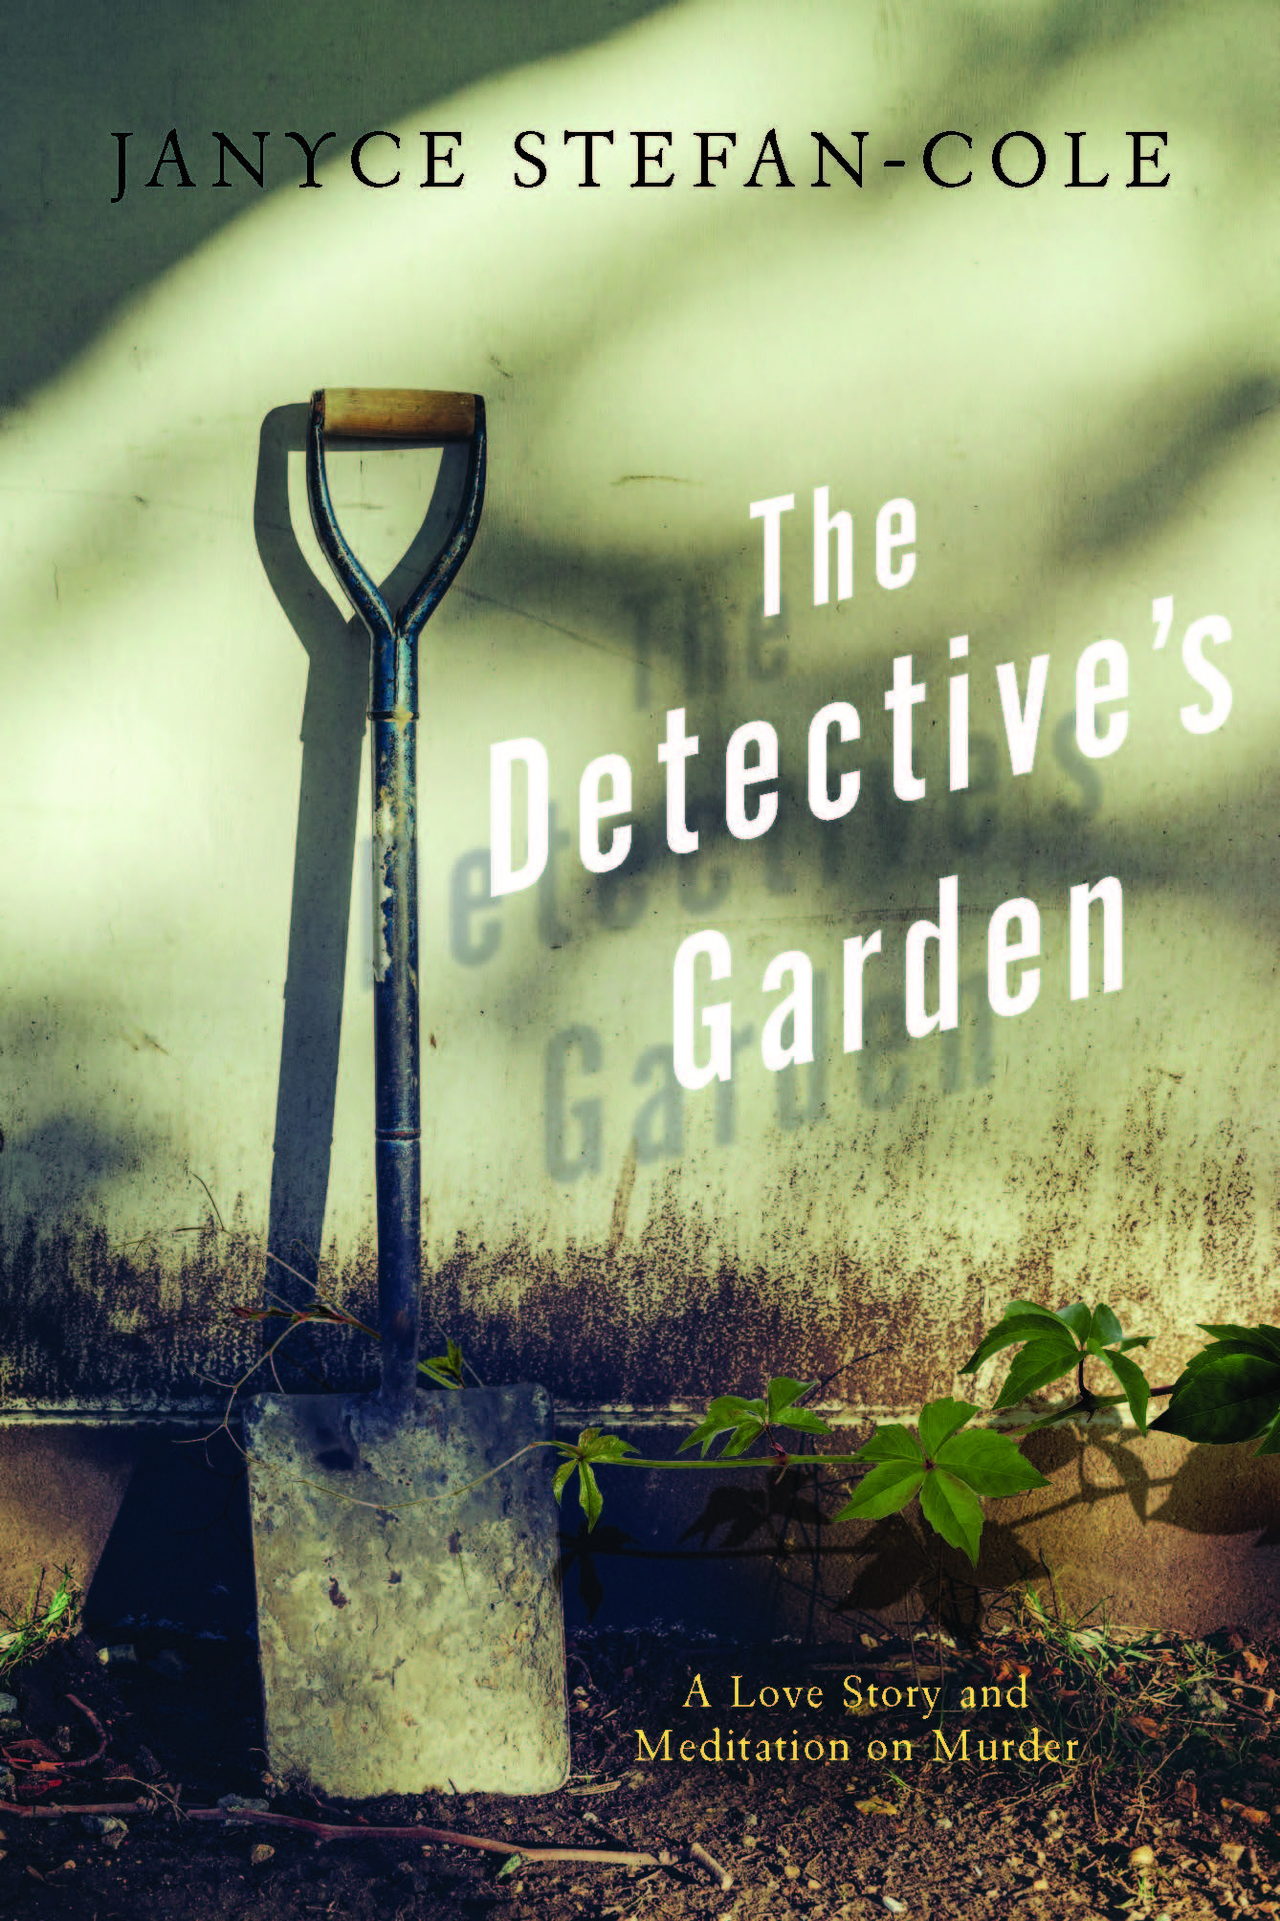 Thedetectivesgardencover